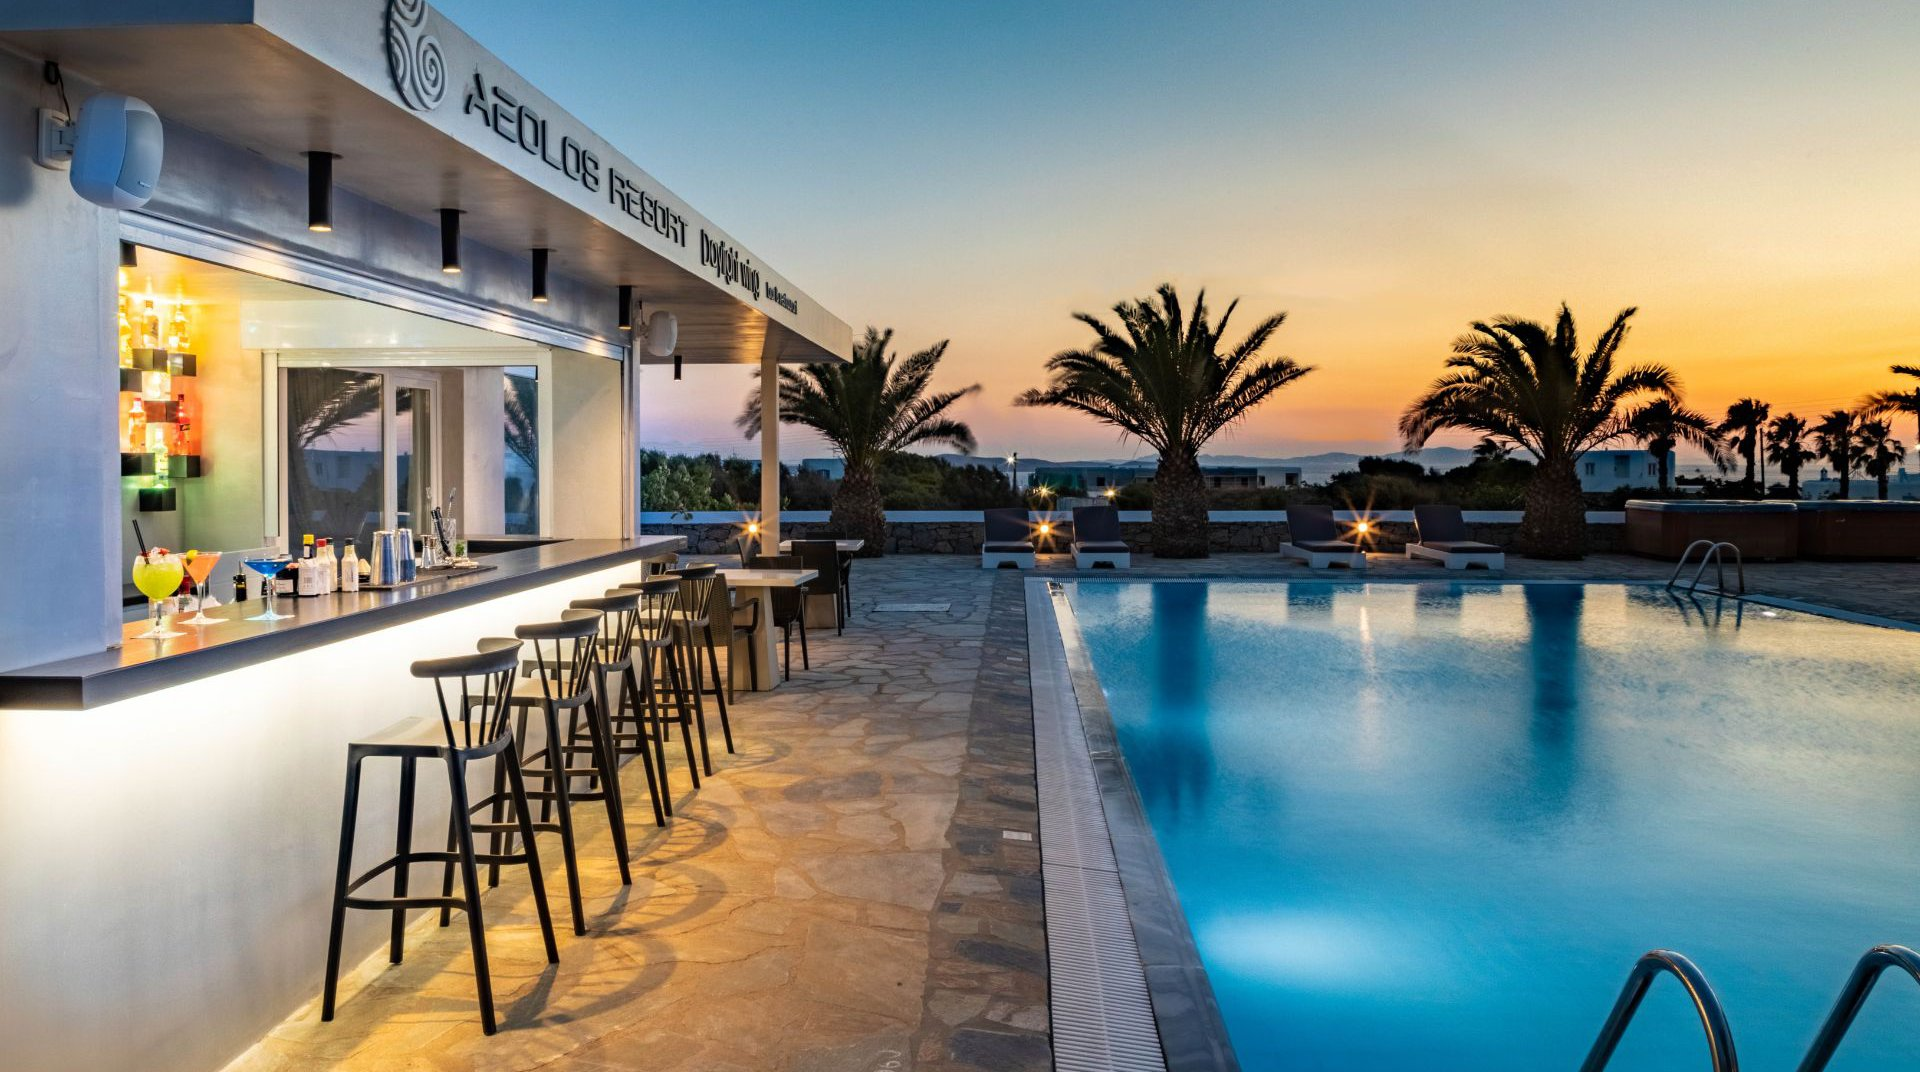 The pool bar of the Daylight Wing during the night with the pool and the sunbeds